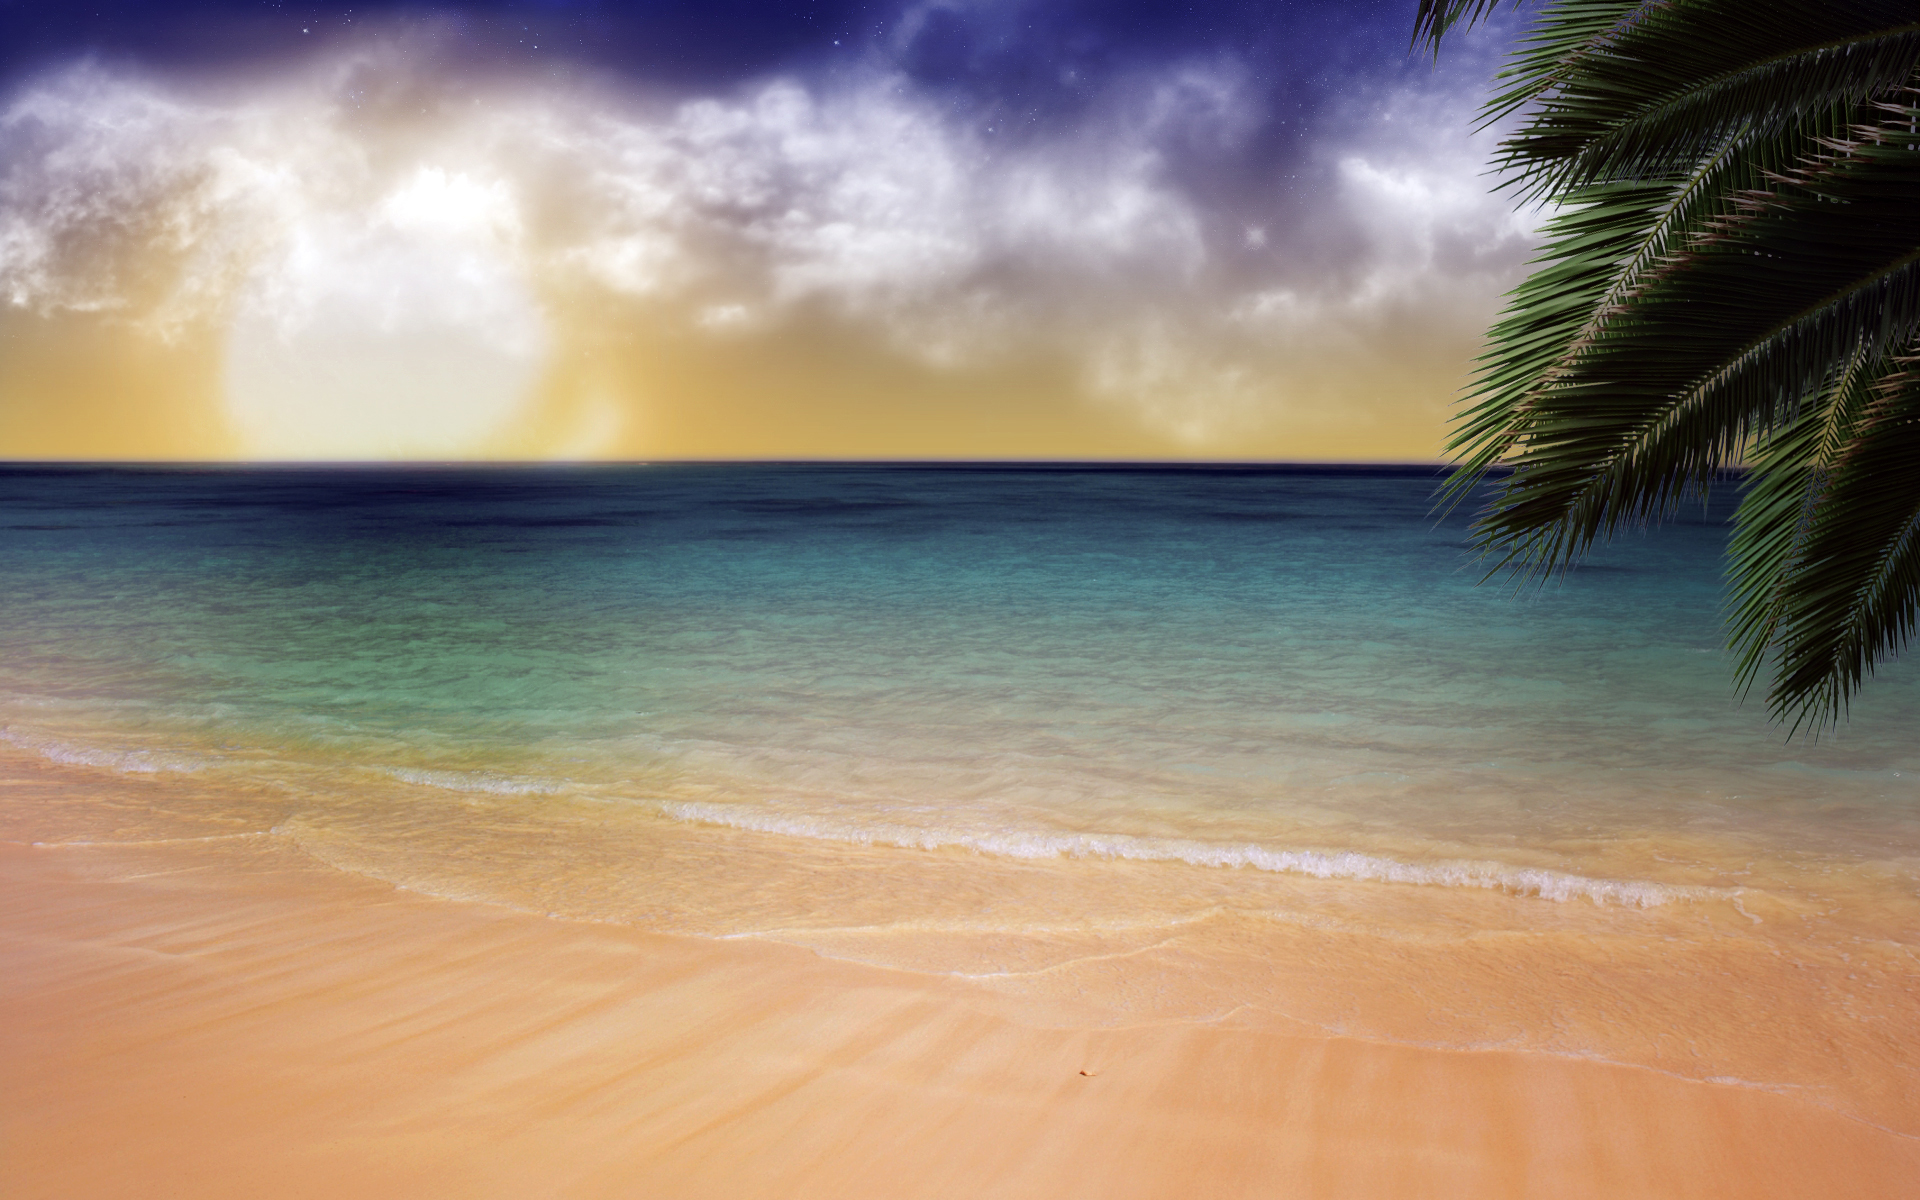 Water Ocean Clouds Beach Sand Trees Sea Outdoors Palm Skyscapes Wallpaper